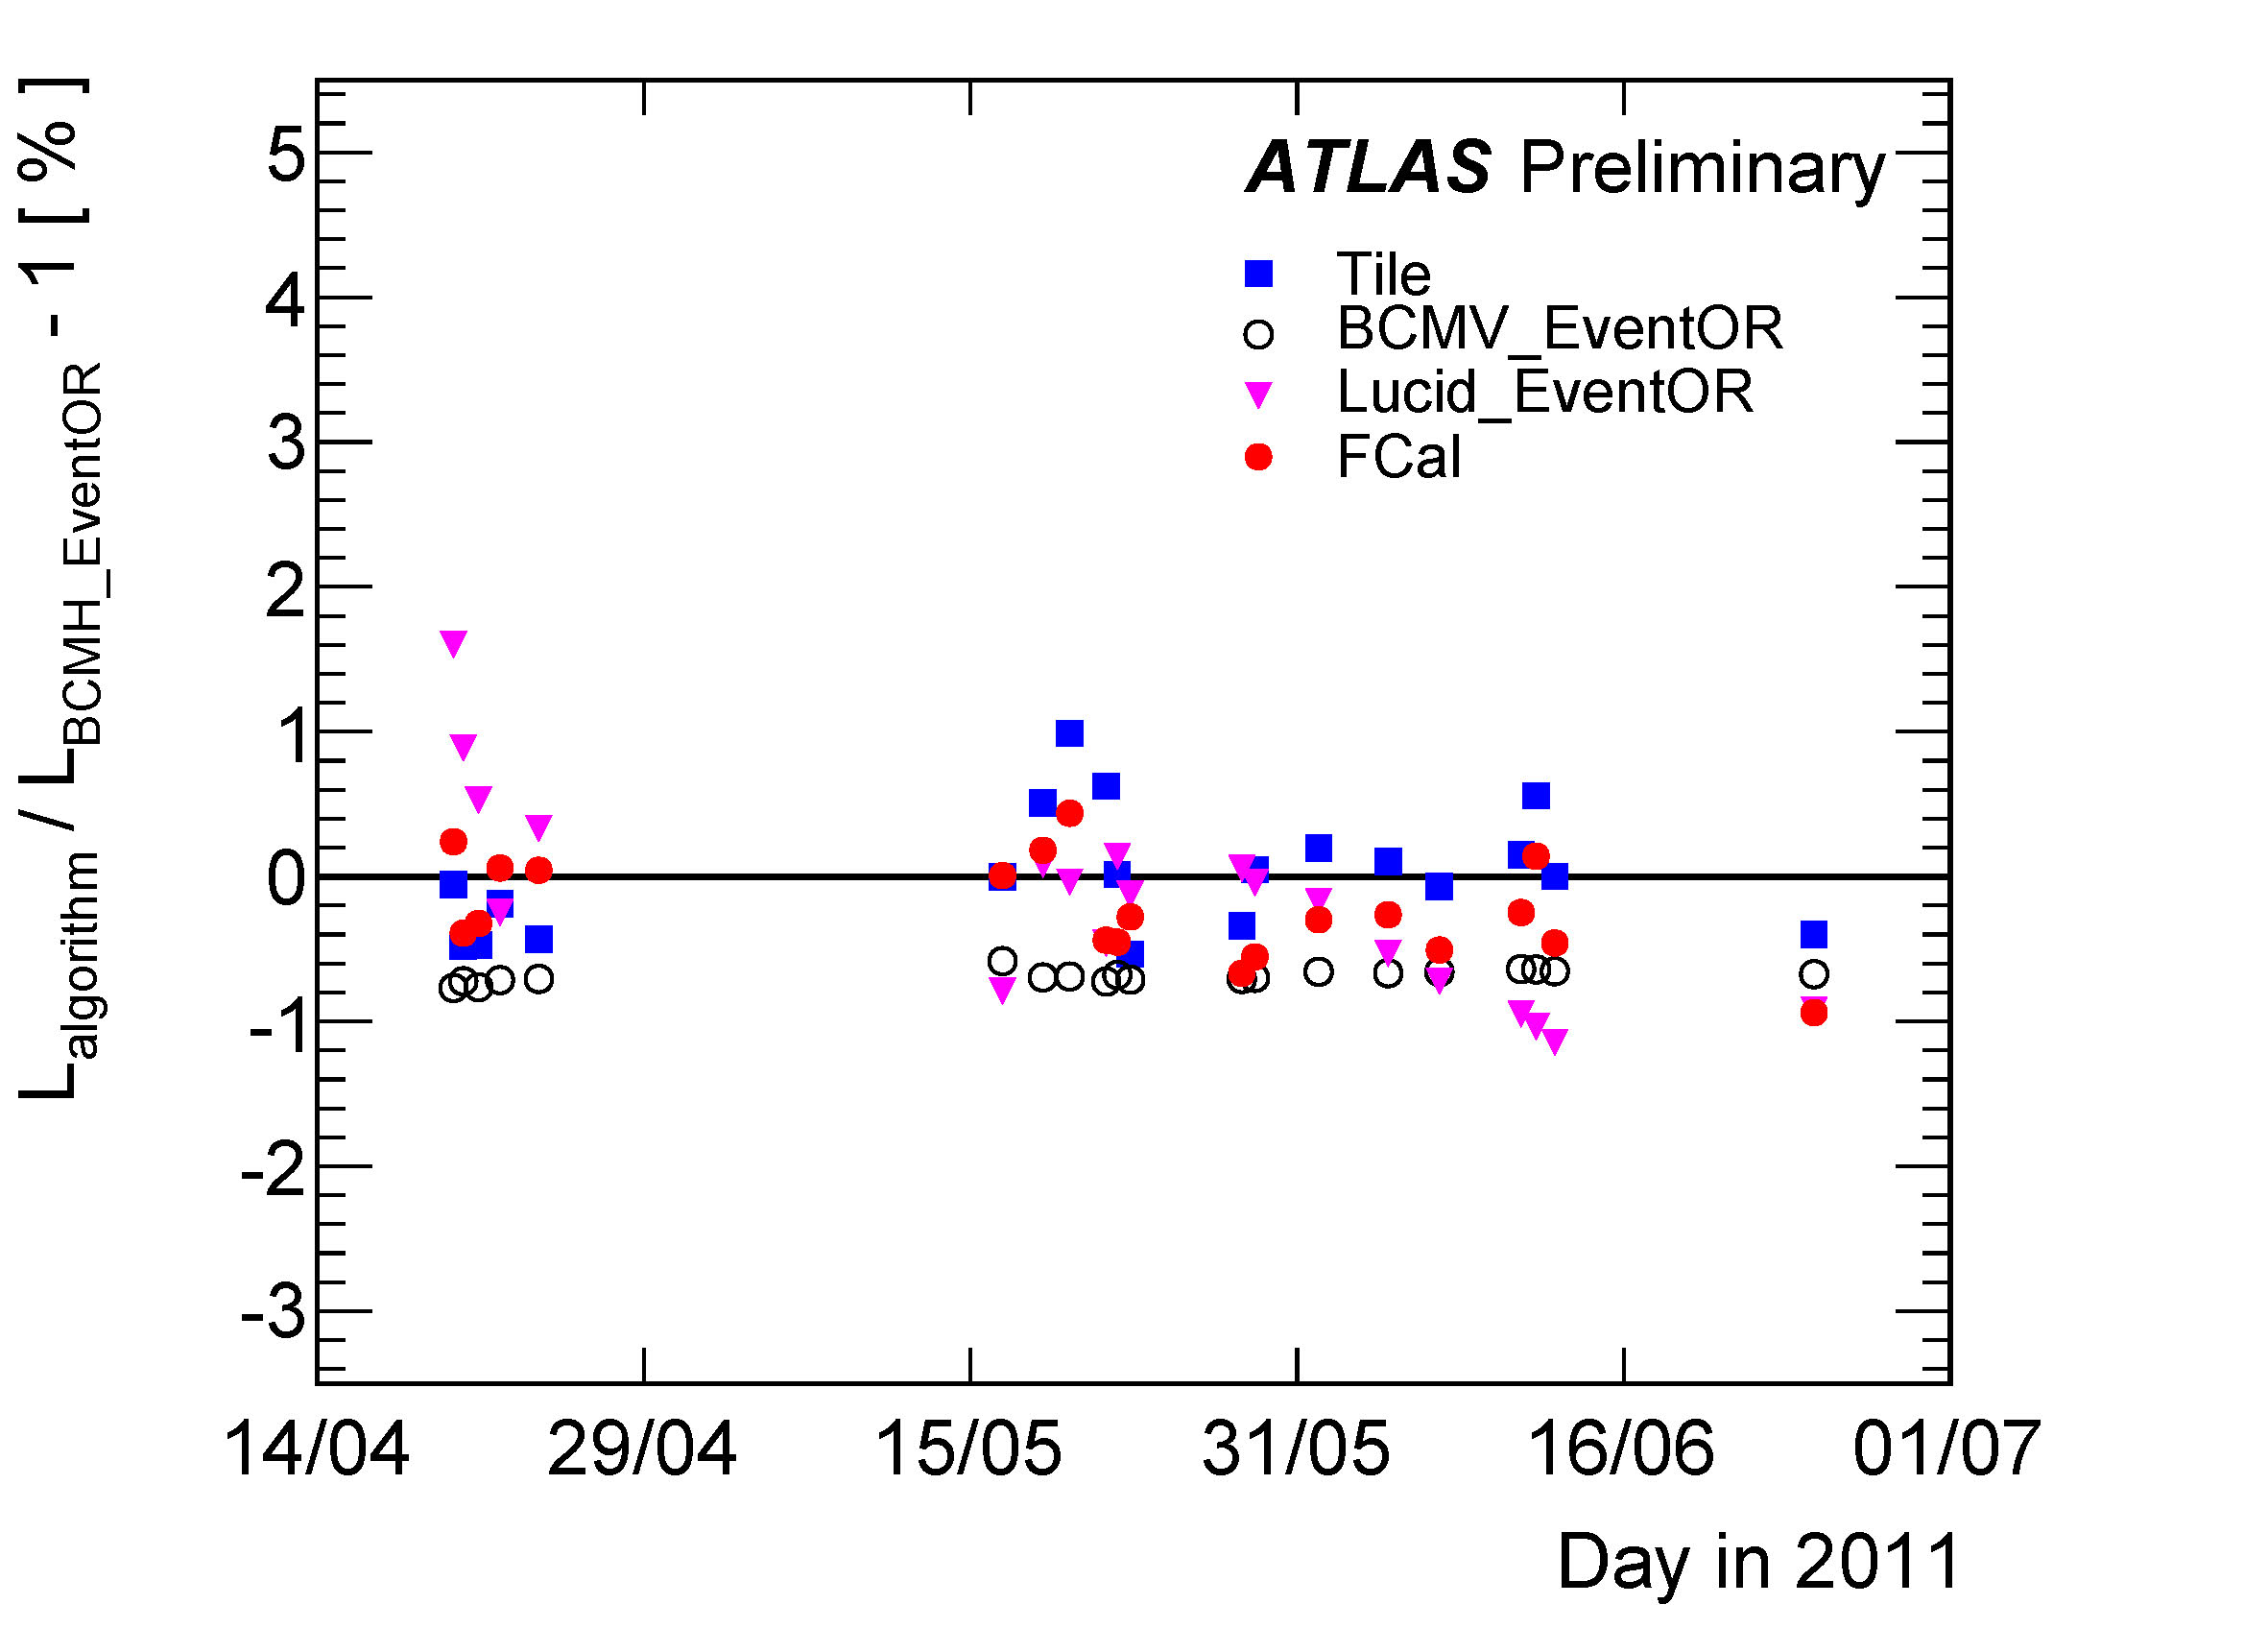 https://atlas.web.cern.ch/Atlas/GROUPS/DATAPREPARATION/PublicPlots/2011/Luminosity/timeStability3.jpg